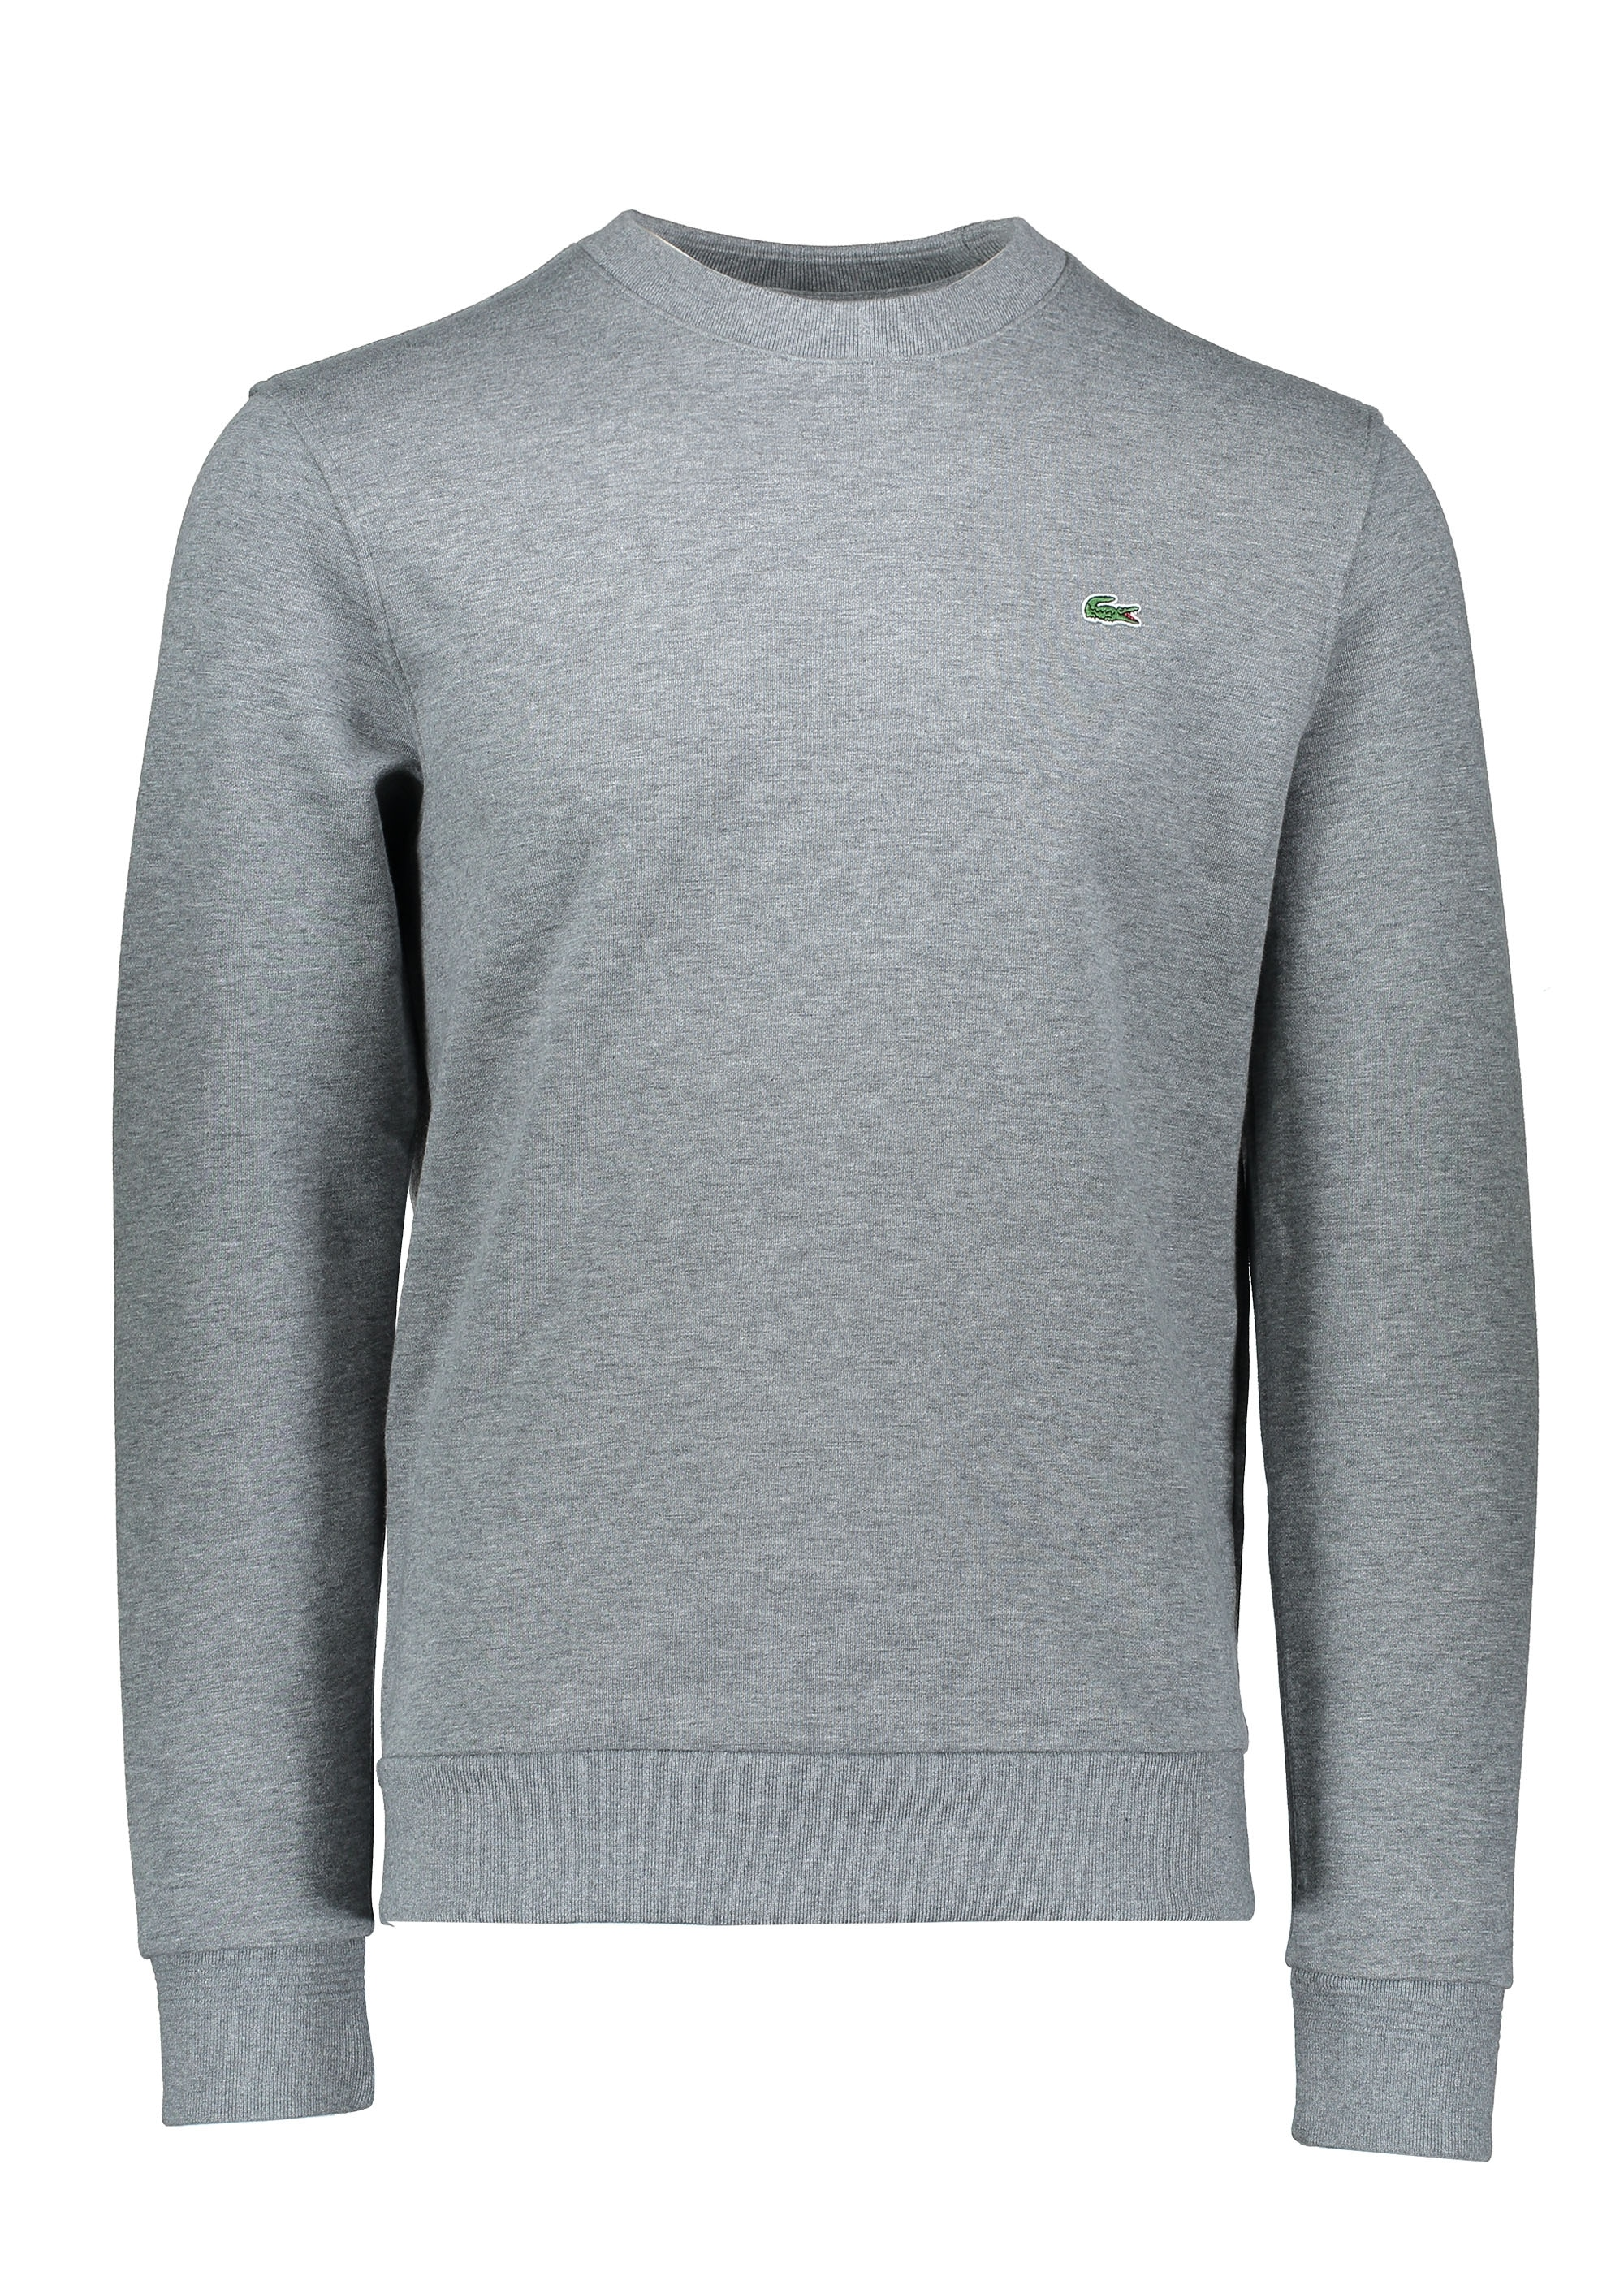 ac15866c Lacoste Logo Sweater - Galaxite Chine